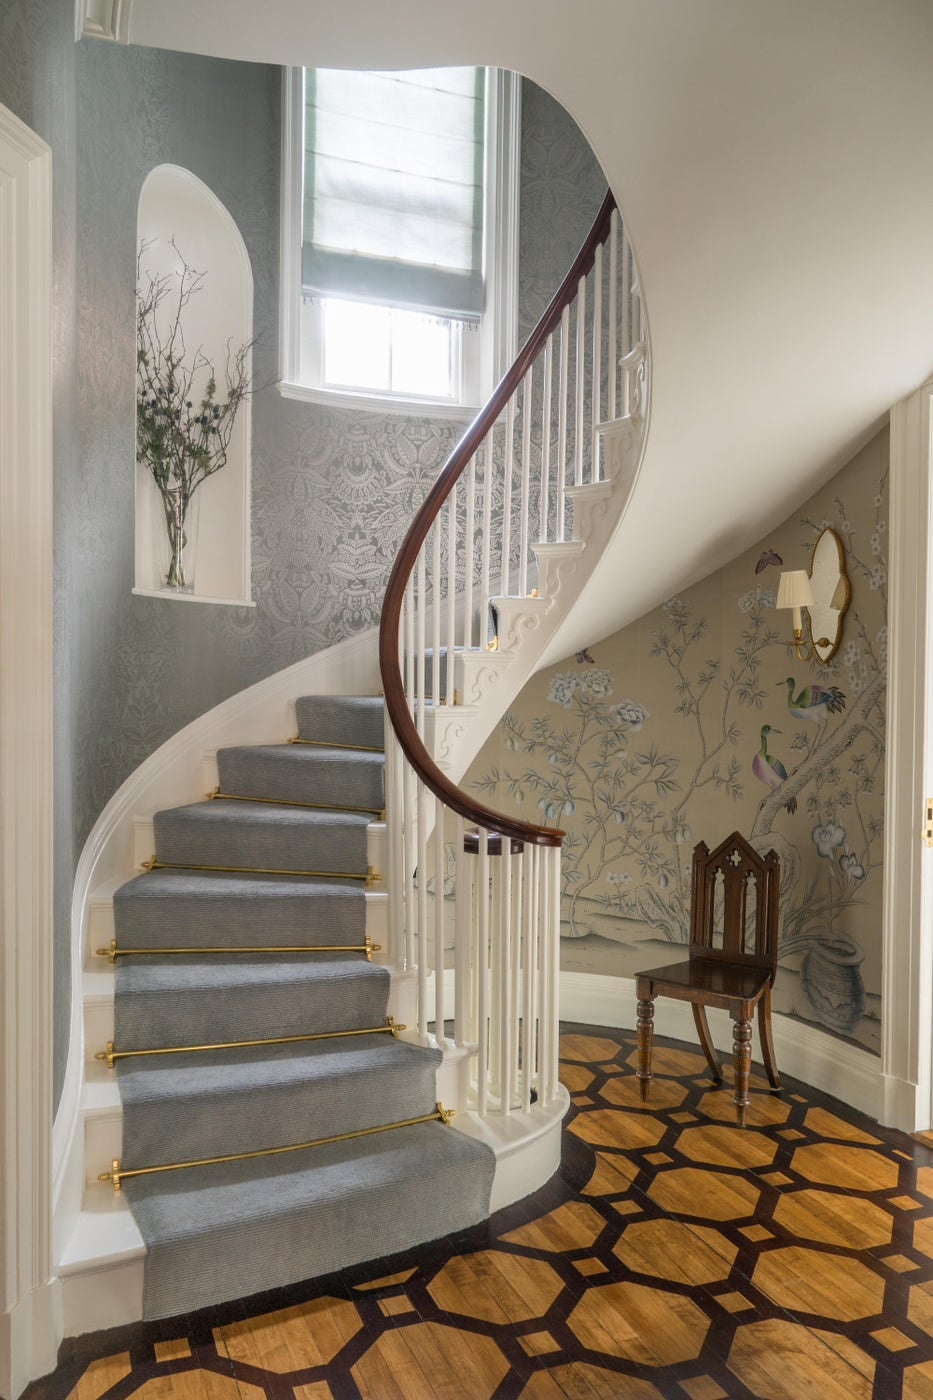 Beacon Hill Foyer with Painted Marquetry Floor and Spiral Staircase